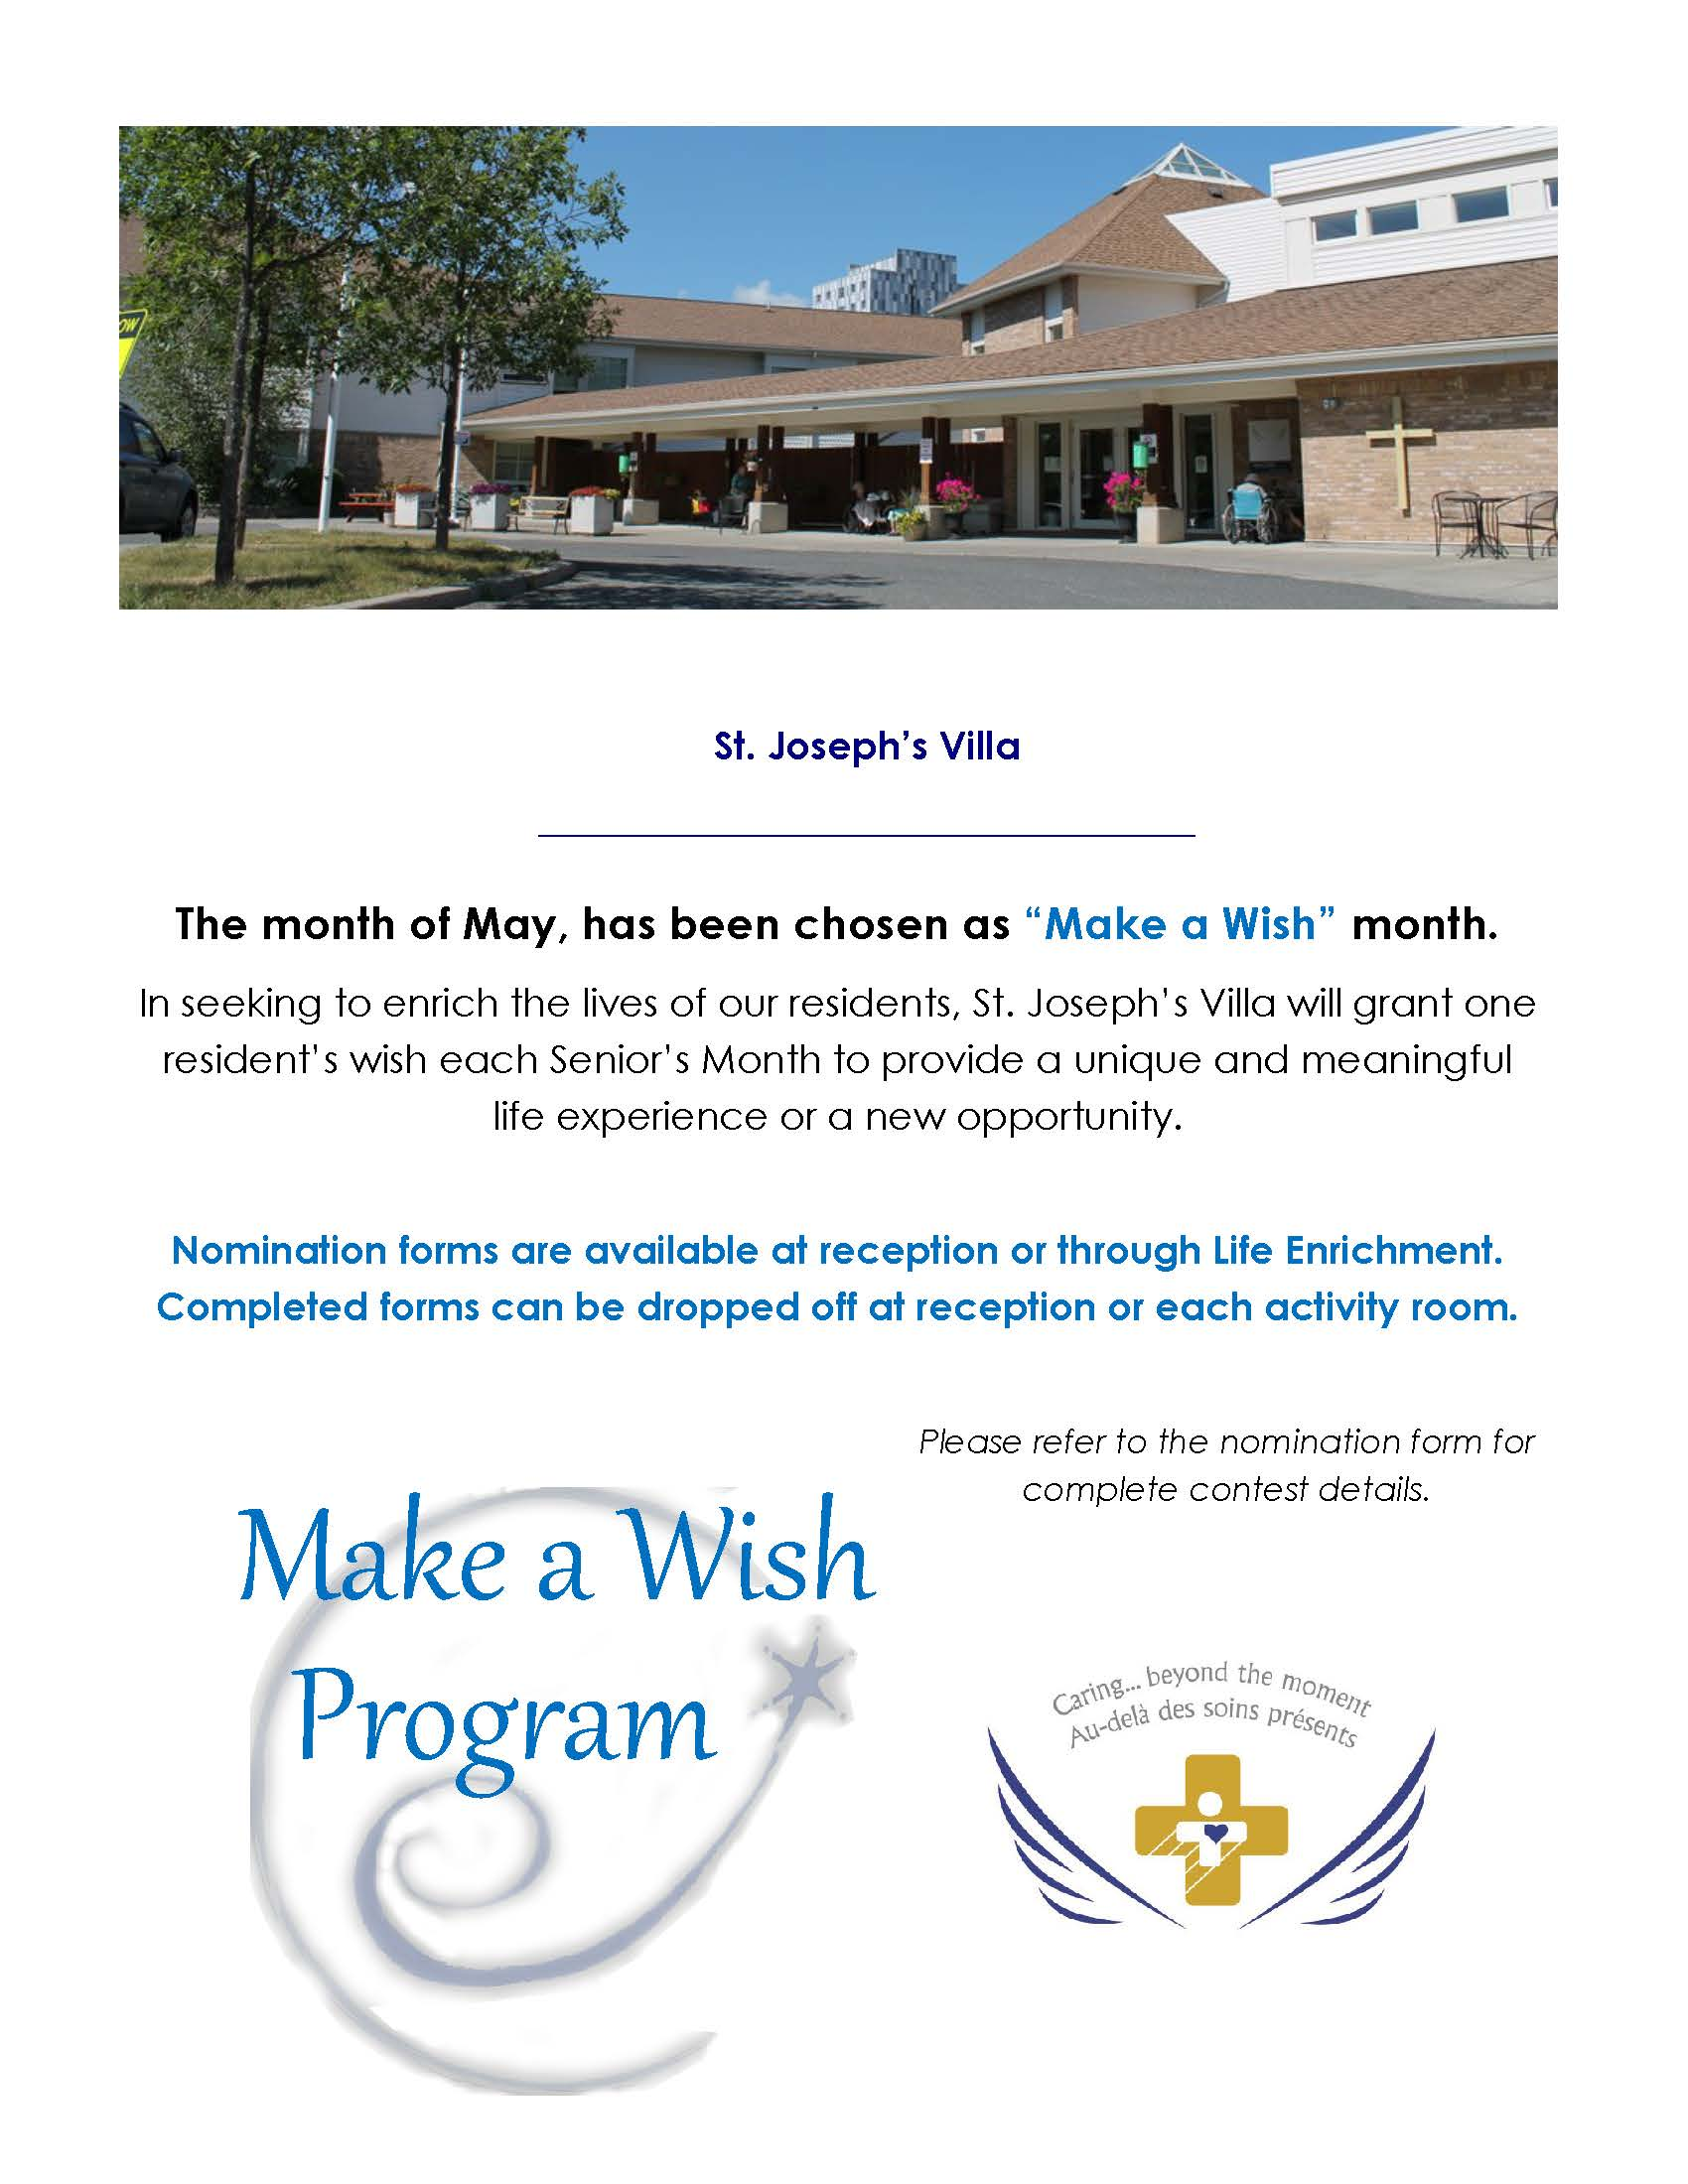 SJV Make-A-Wish Program poster